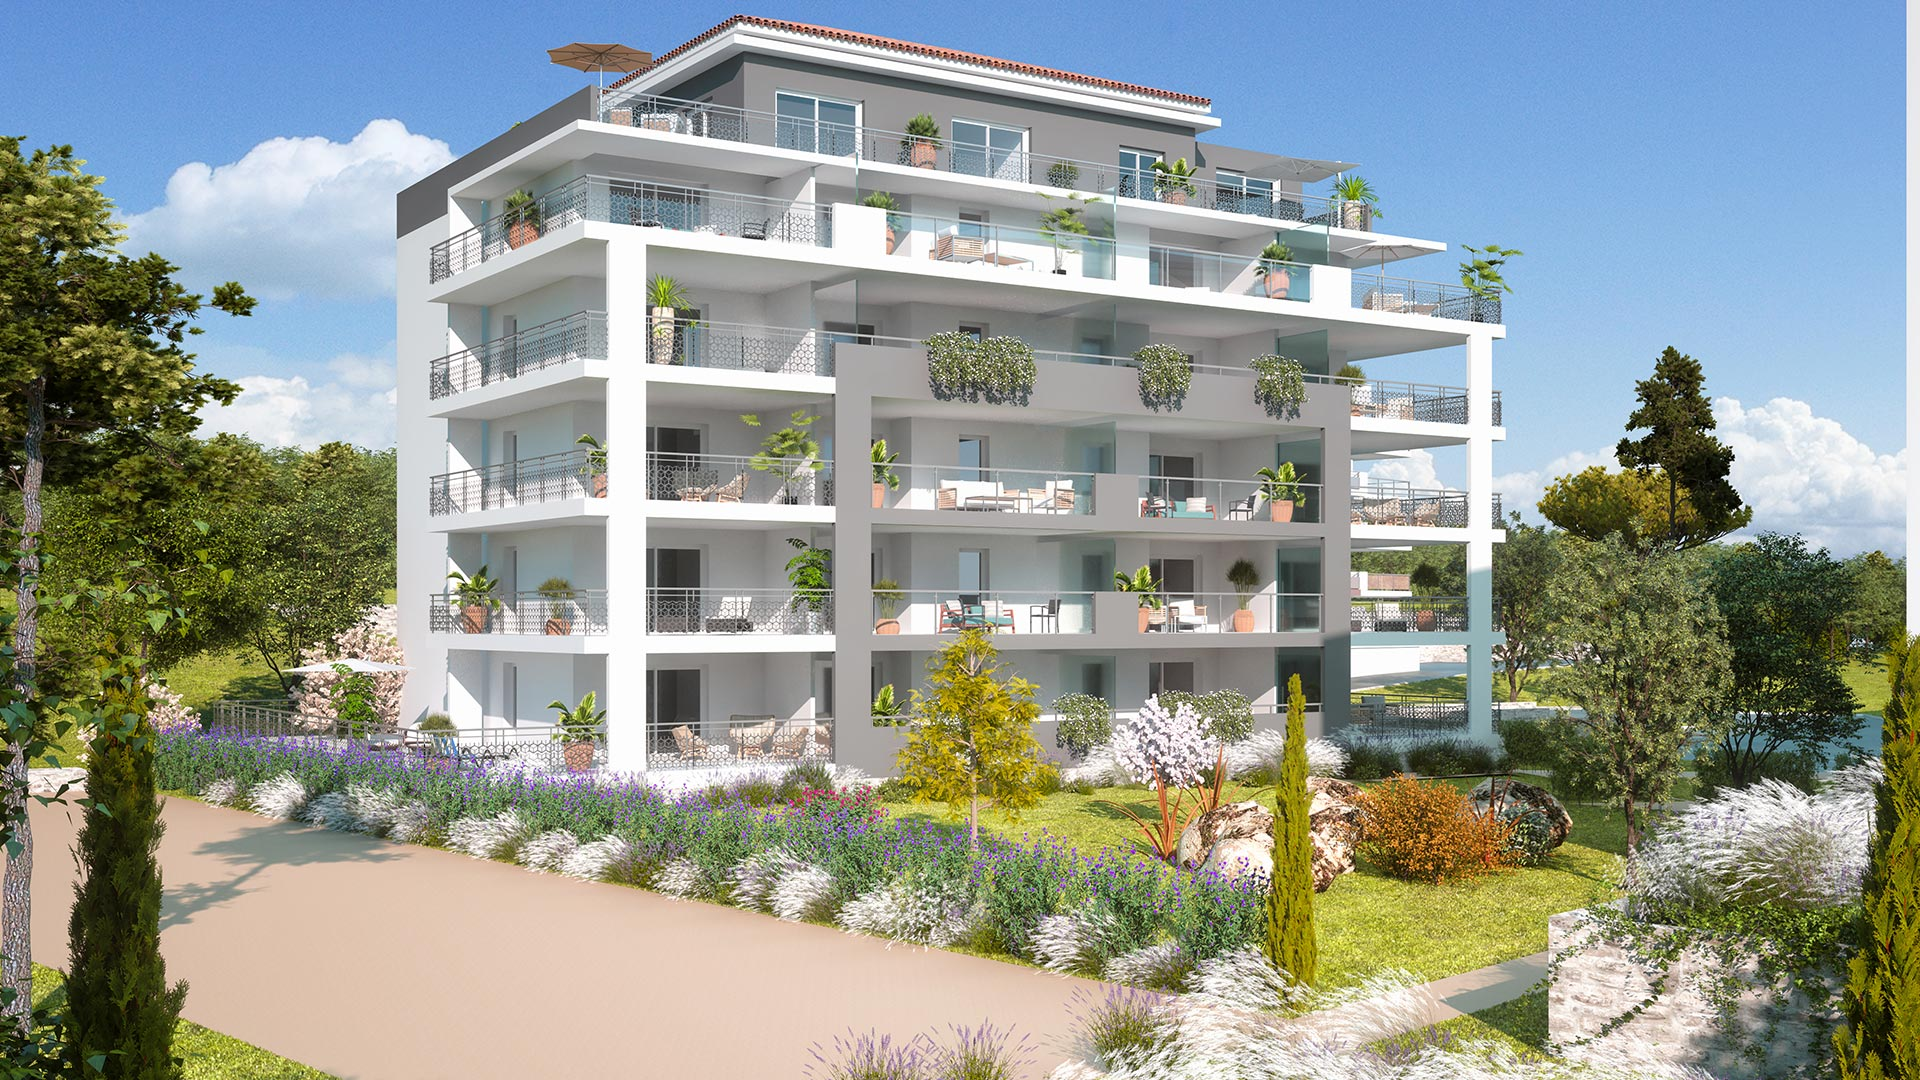 New apartments for sale in La Garde 83130